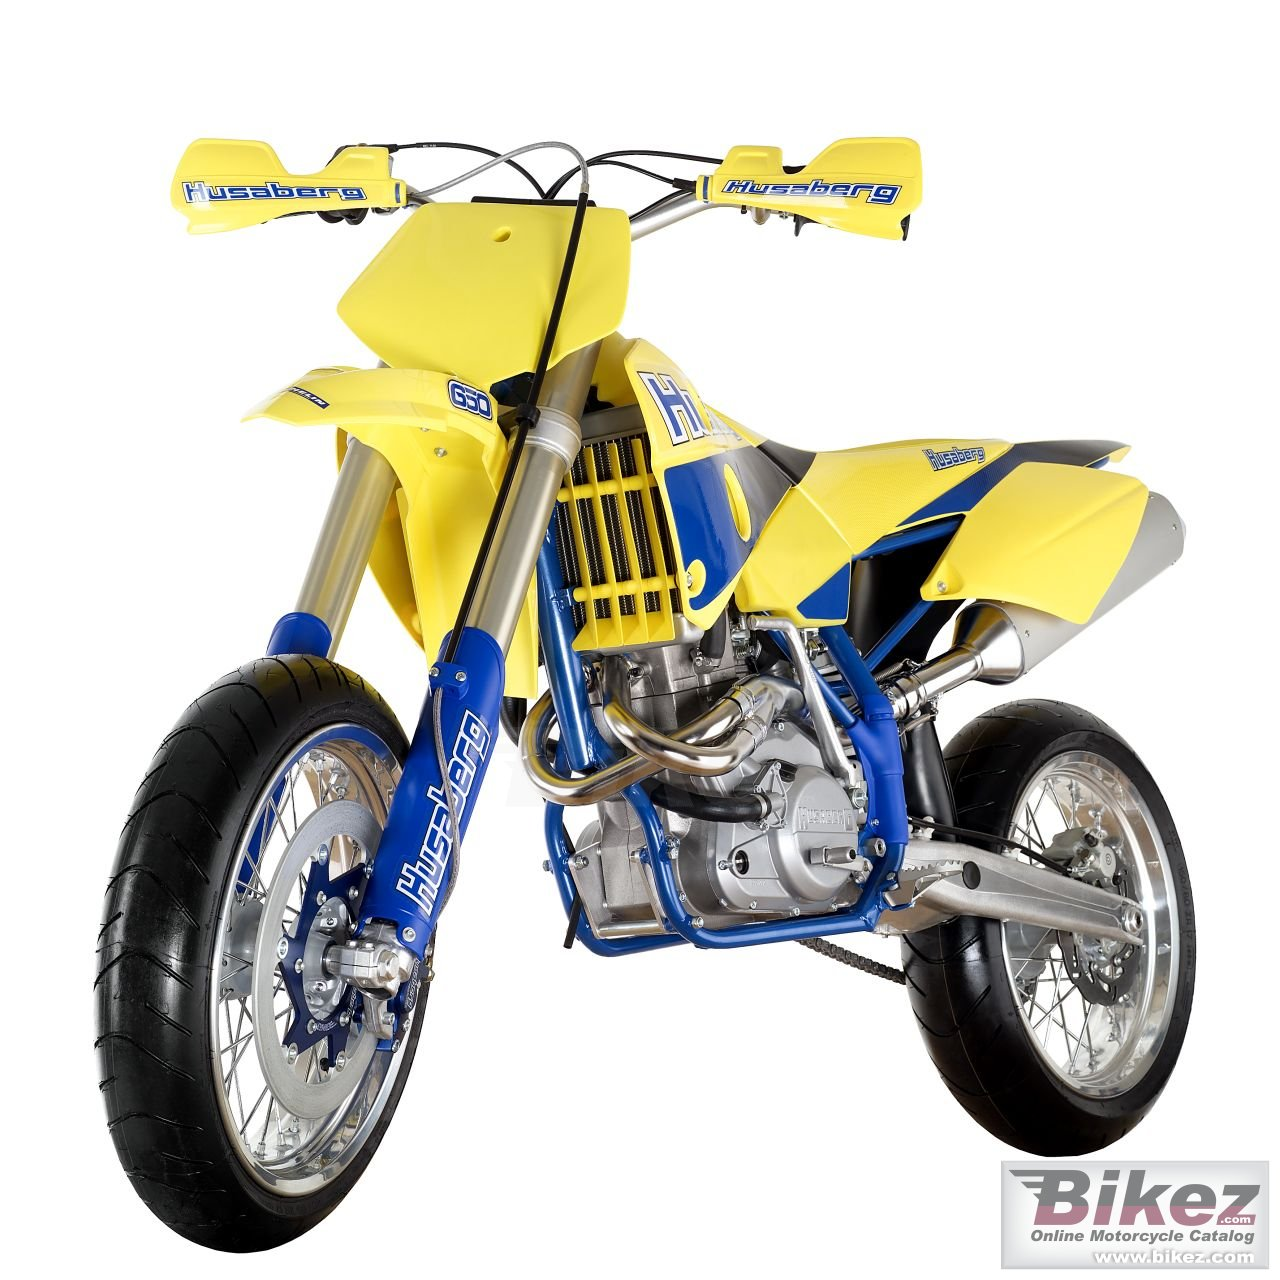 Big Husaberg fs 650 c picture and wallpaper from Bikez.com